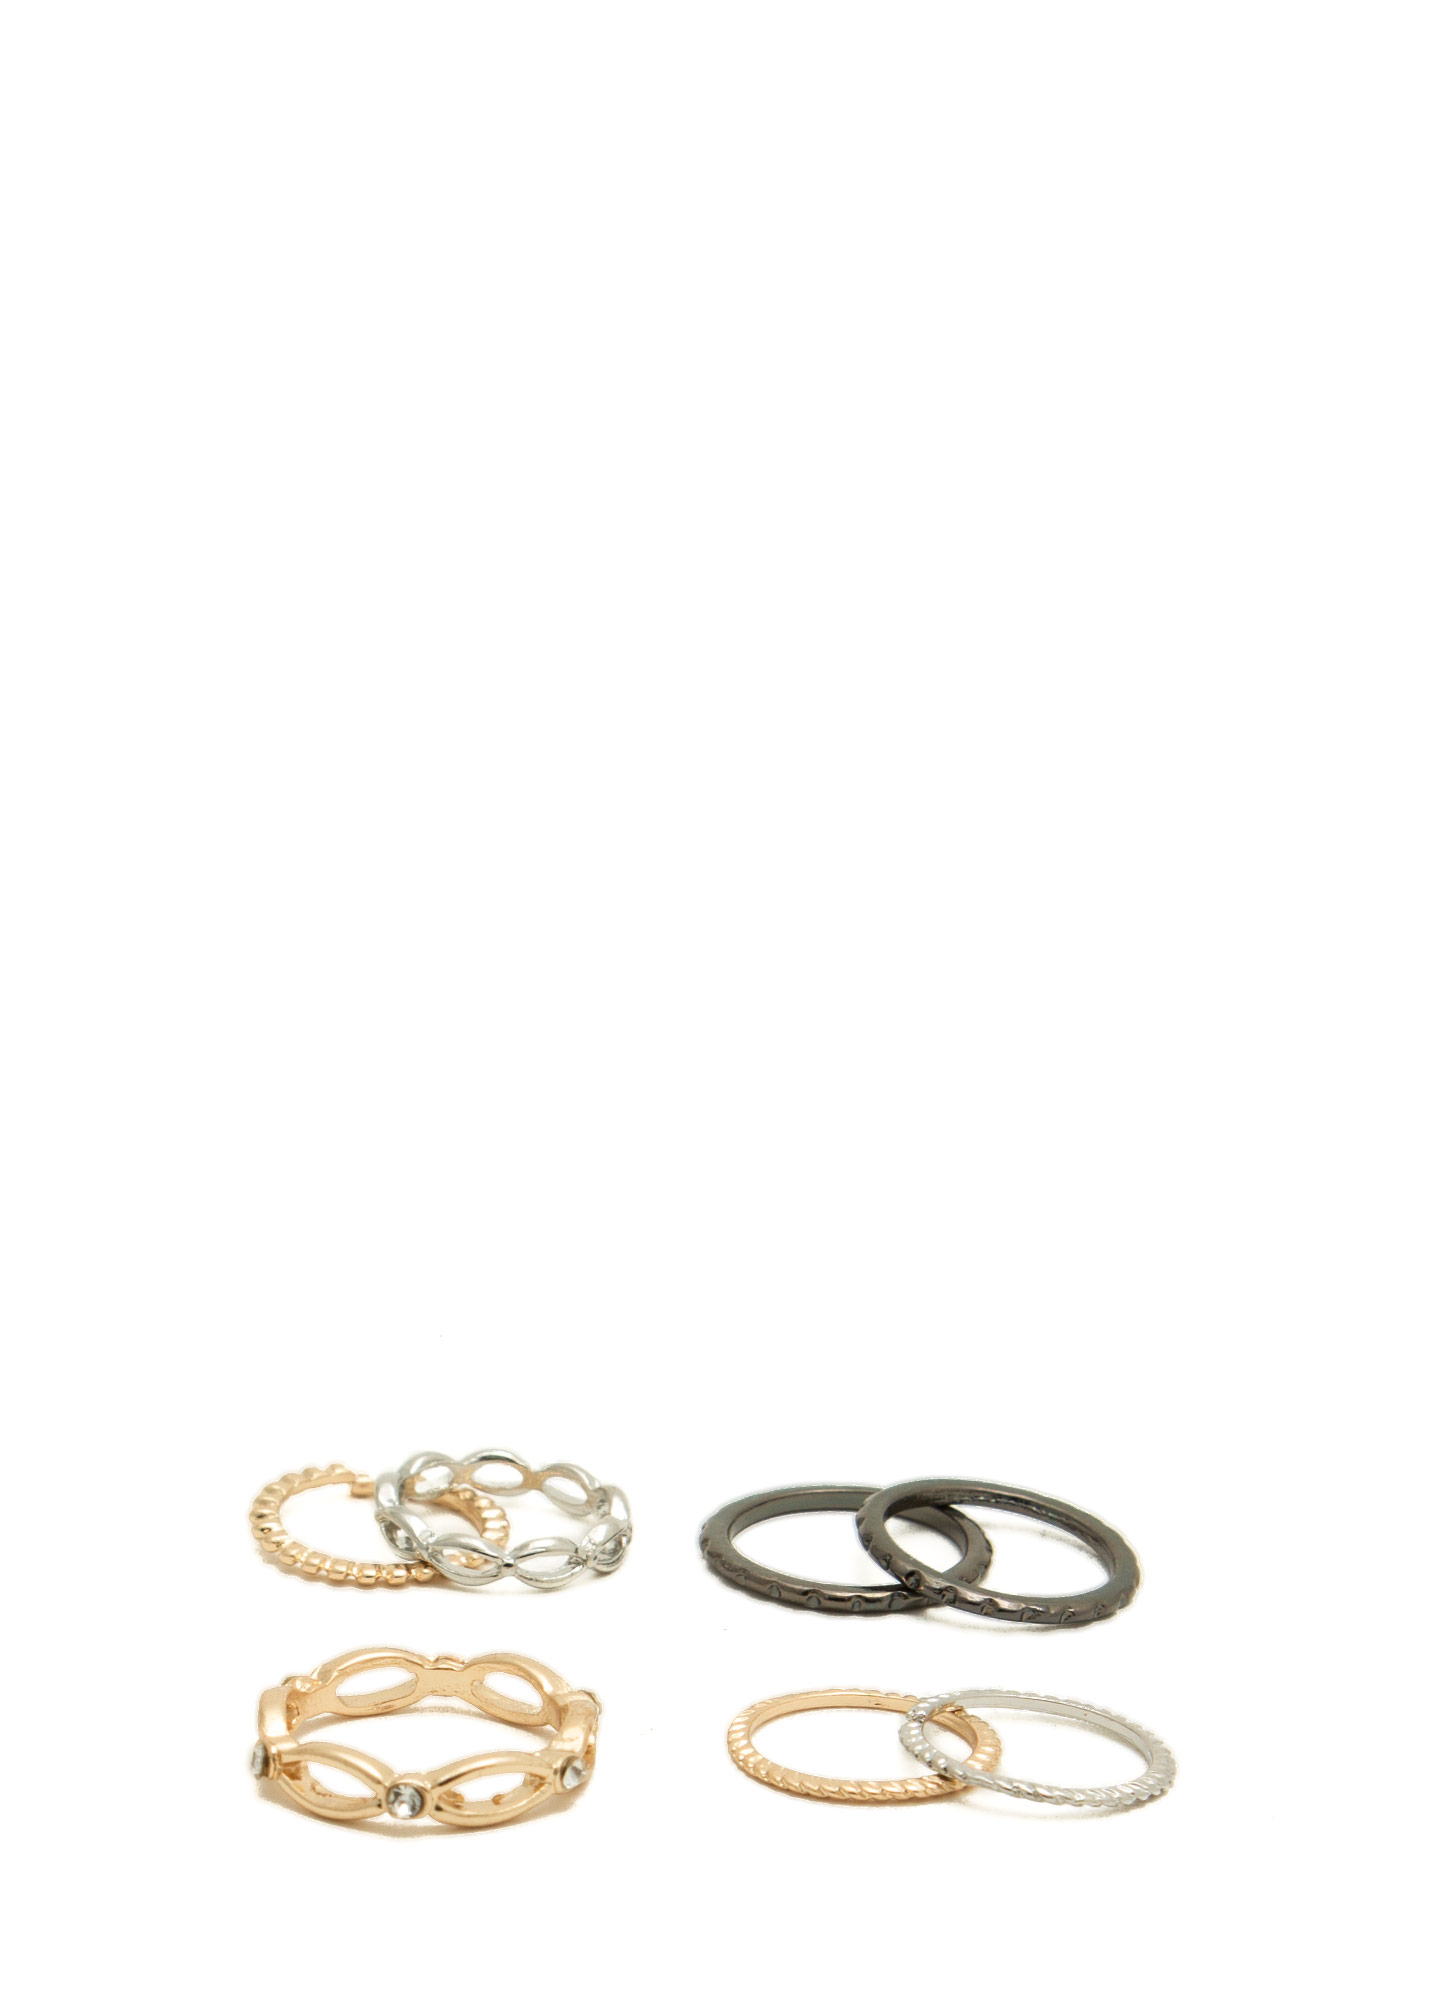 Dainty 'N Textured Metallic Ring Set MULTI